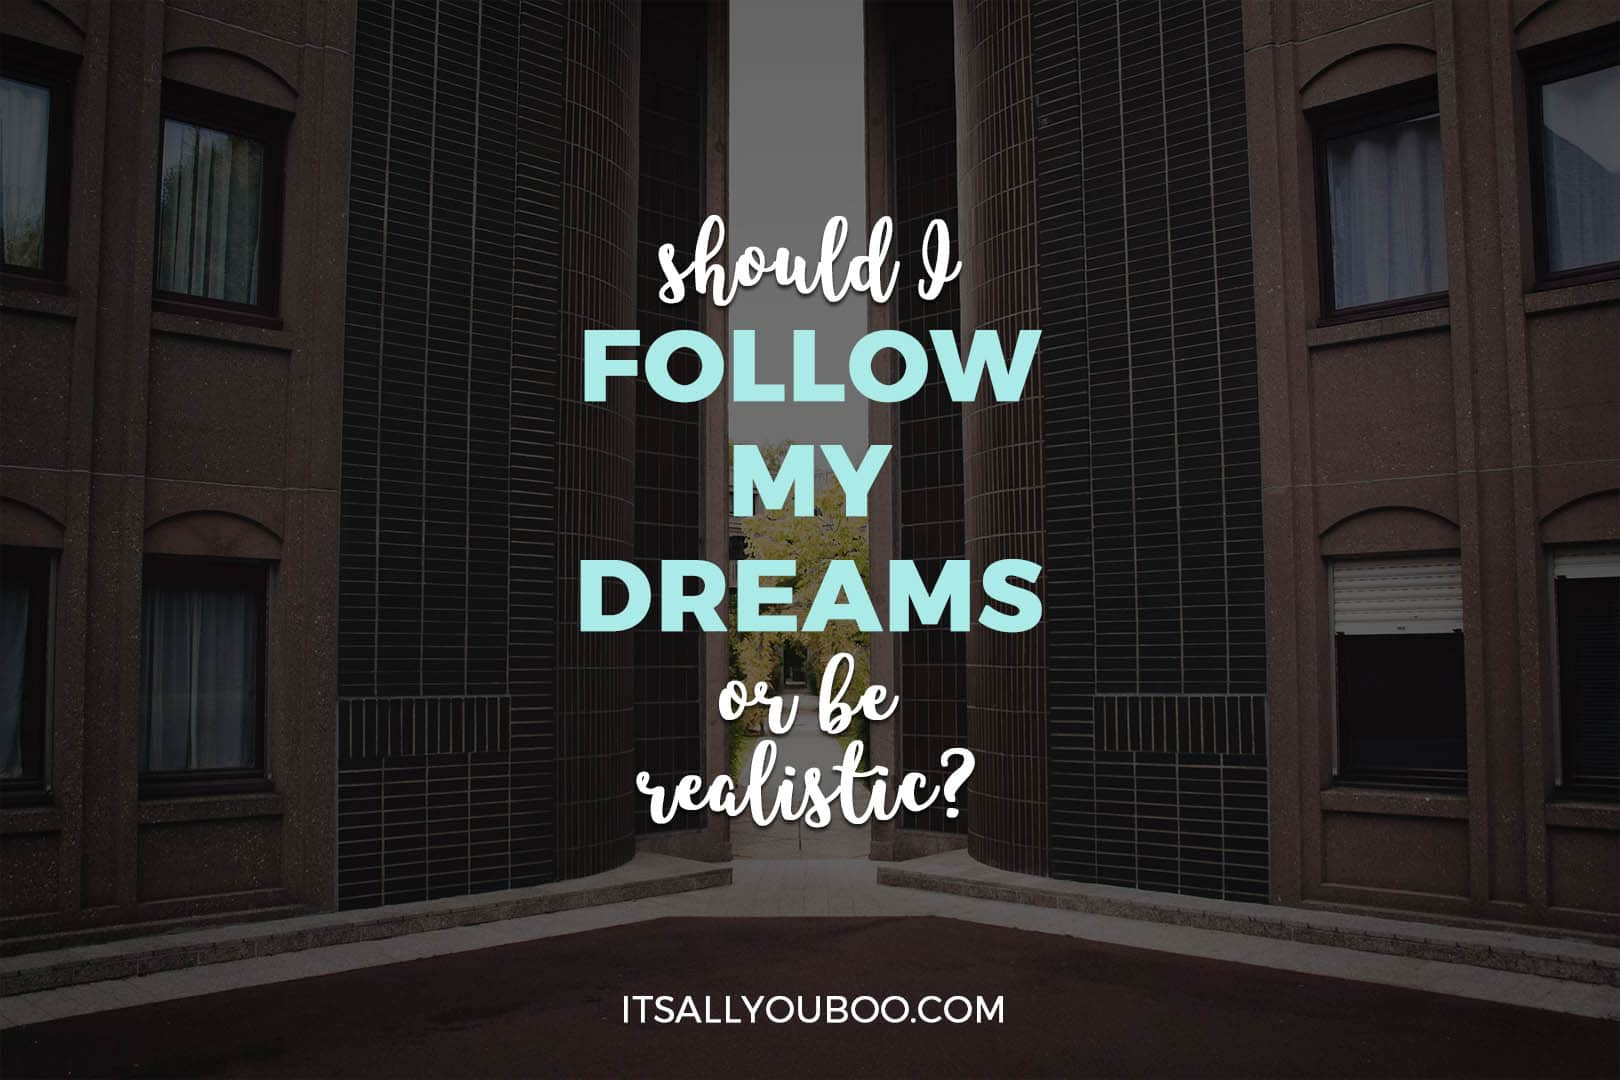 Should I Follow My Dreams or Be Realistic?